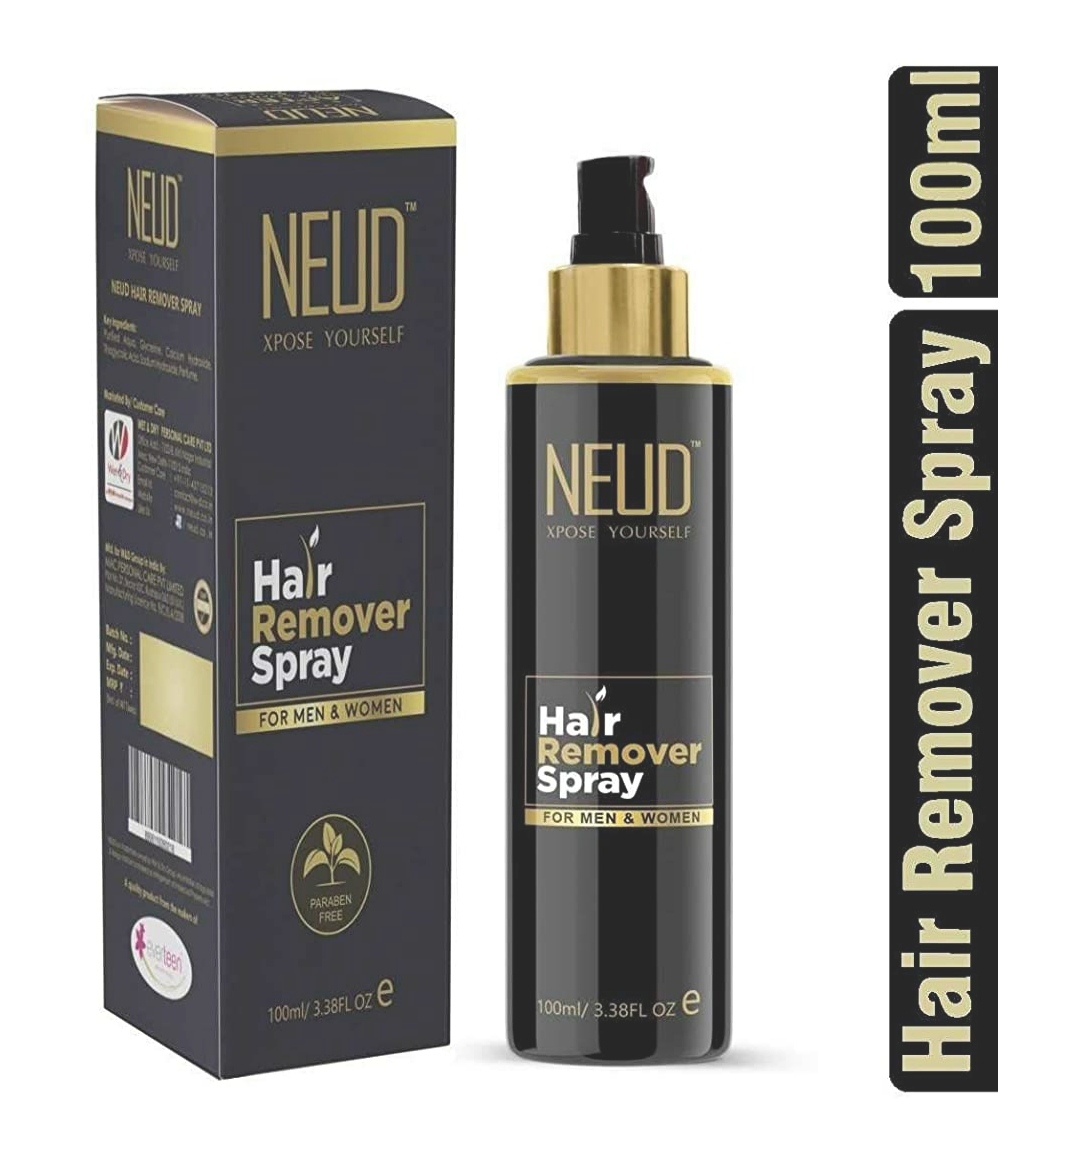 Neud Hair Remover Spray Review Theblissfulbeauty